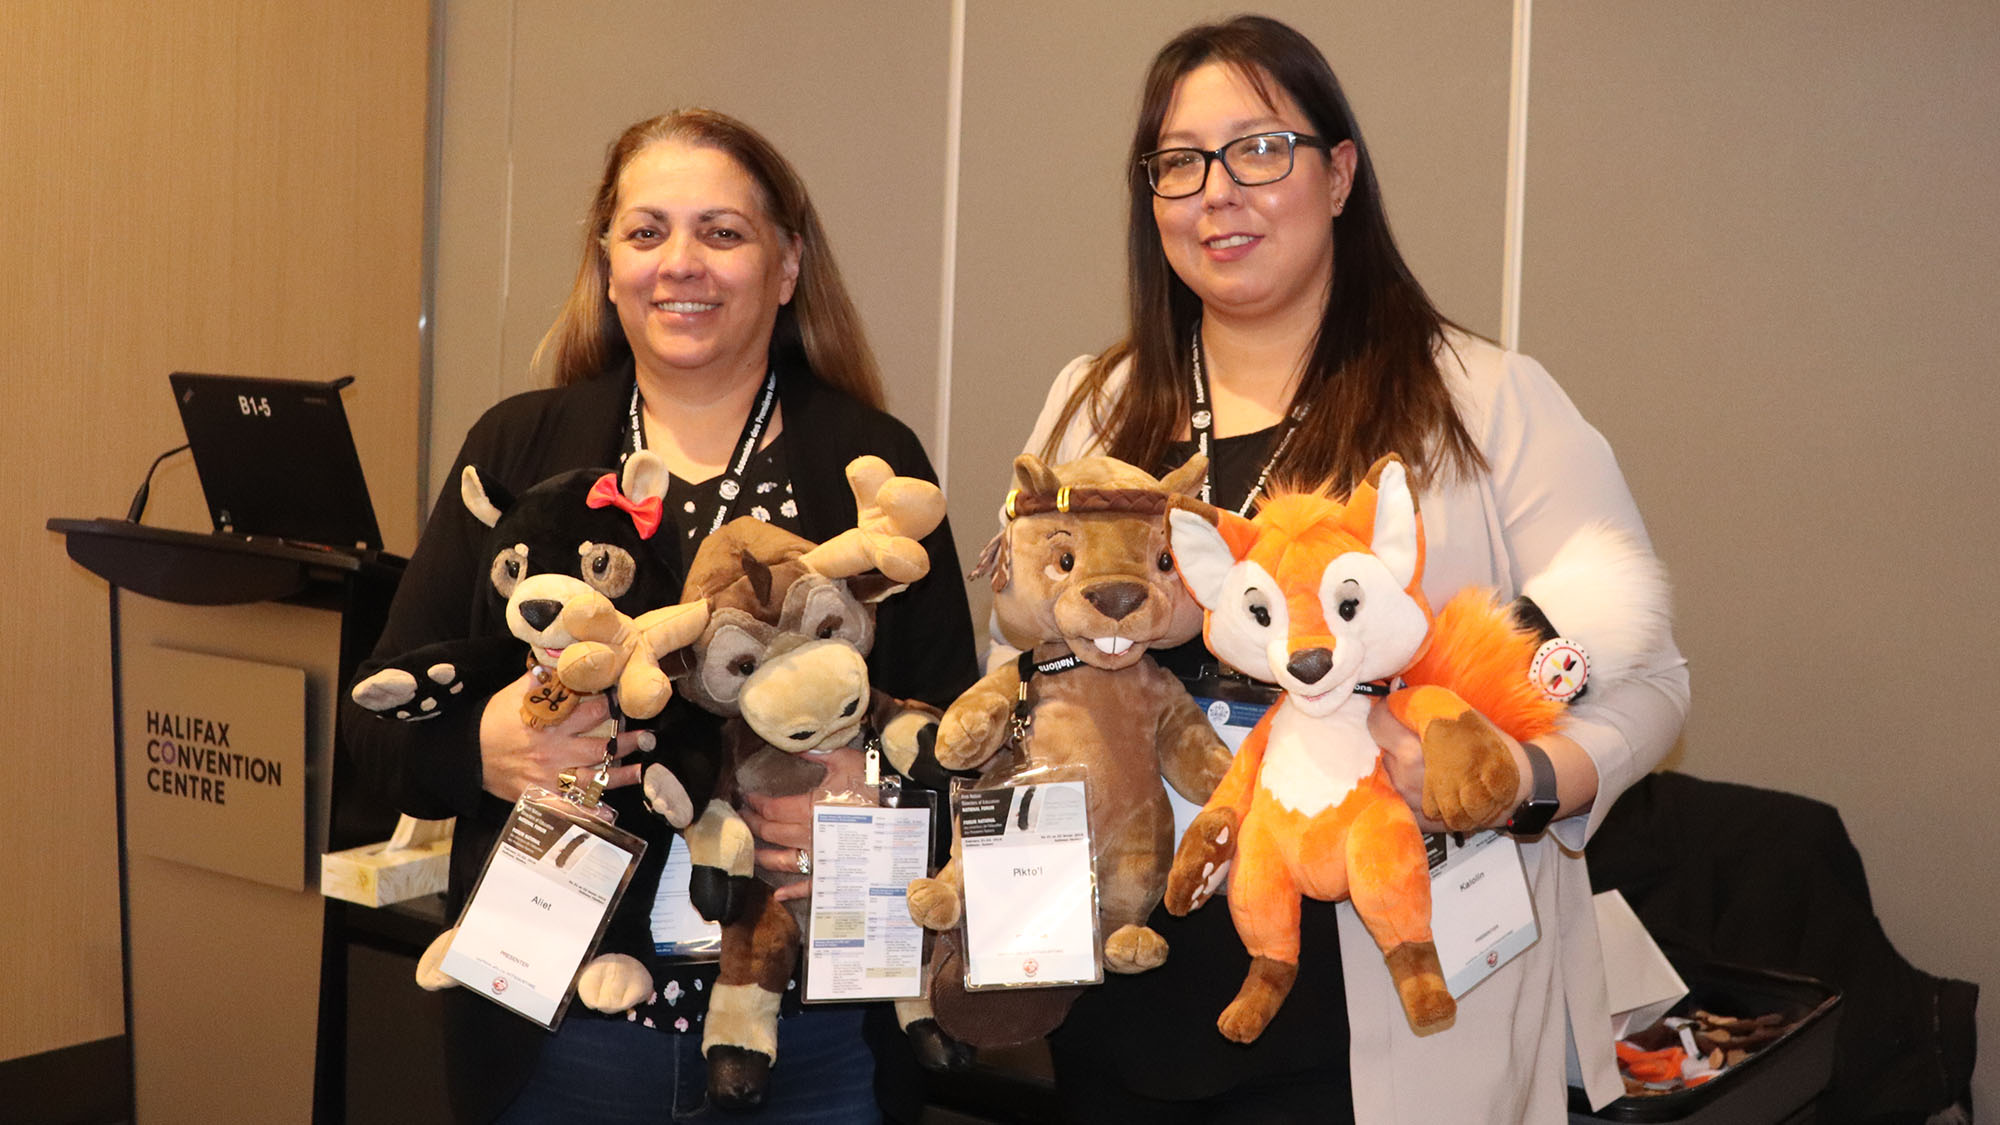 Yoland Denny (left) and Blaire Gould (right) hold up the four puppets Aliet, Antle, Pikto'l and Kalolin.